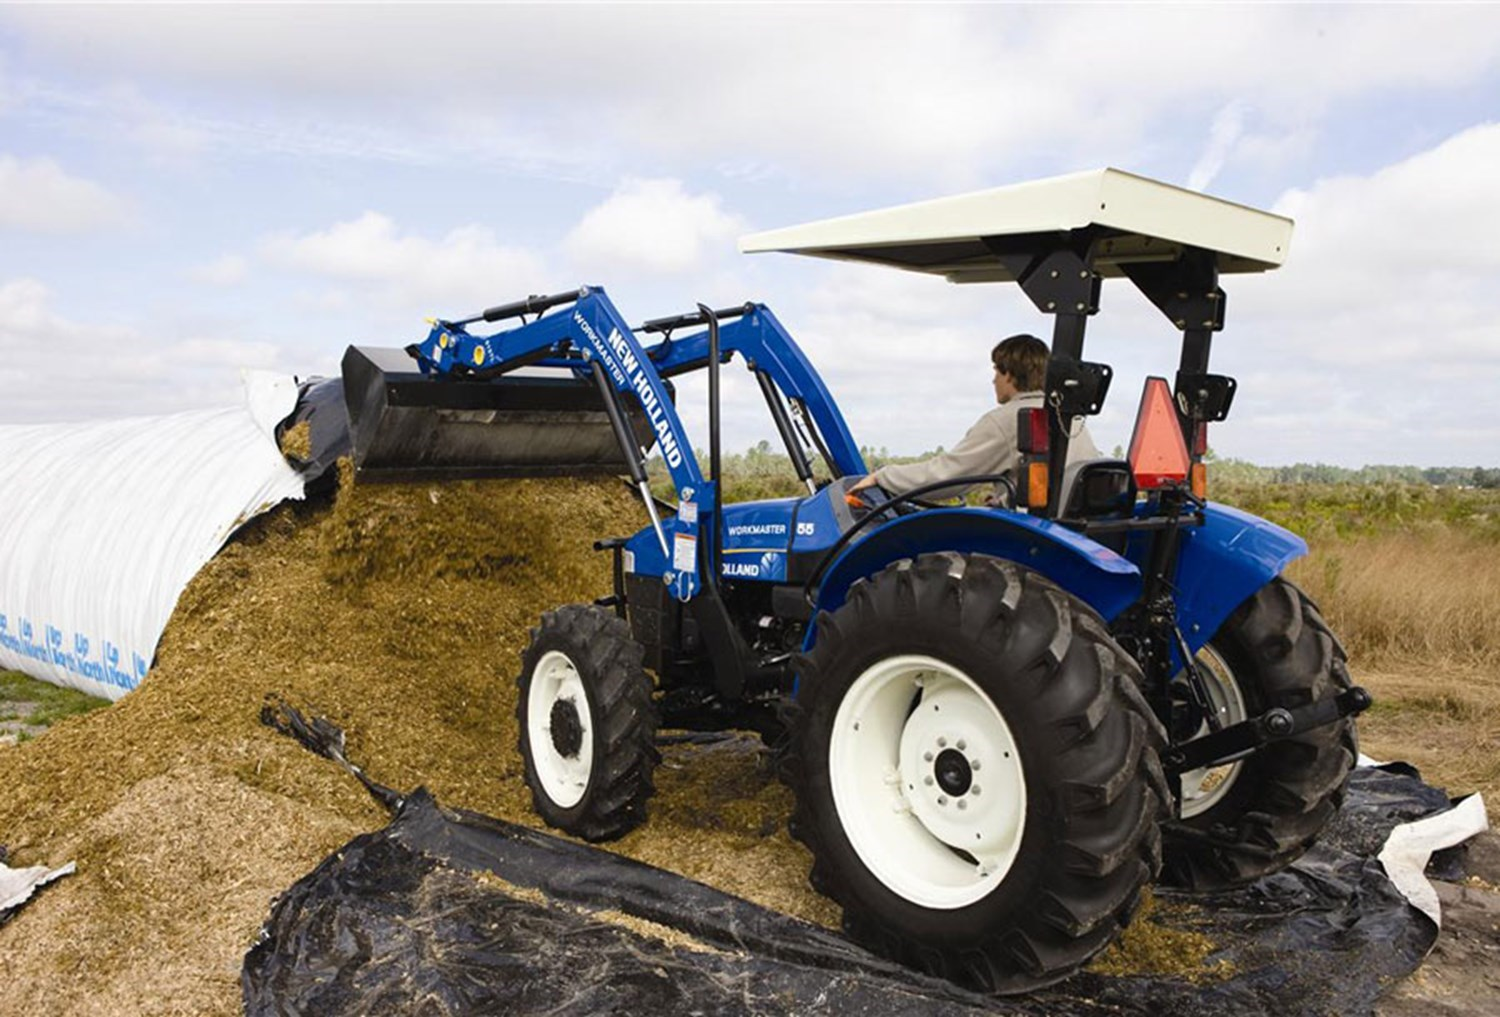 NEW HOLLAND WORKMASTER 55 4WD